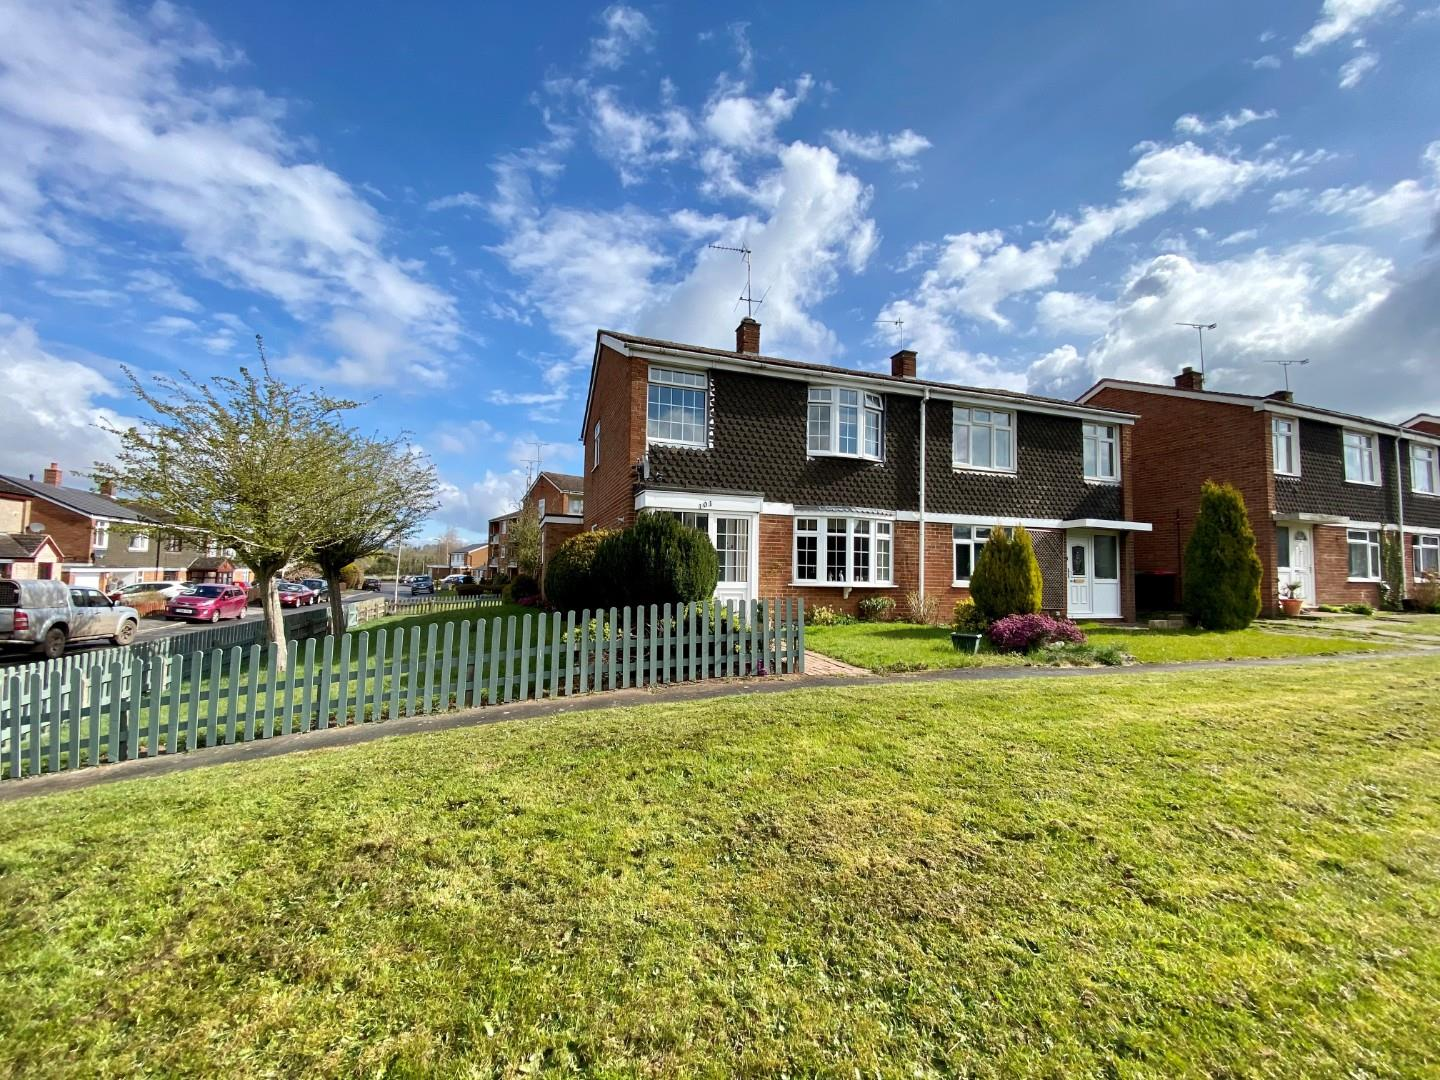 3 bed semi-detached house for sale in Coventry Road, Coventry, CV7